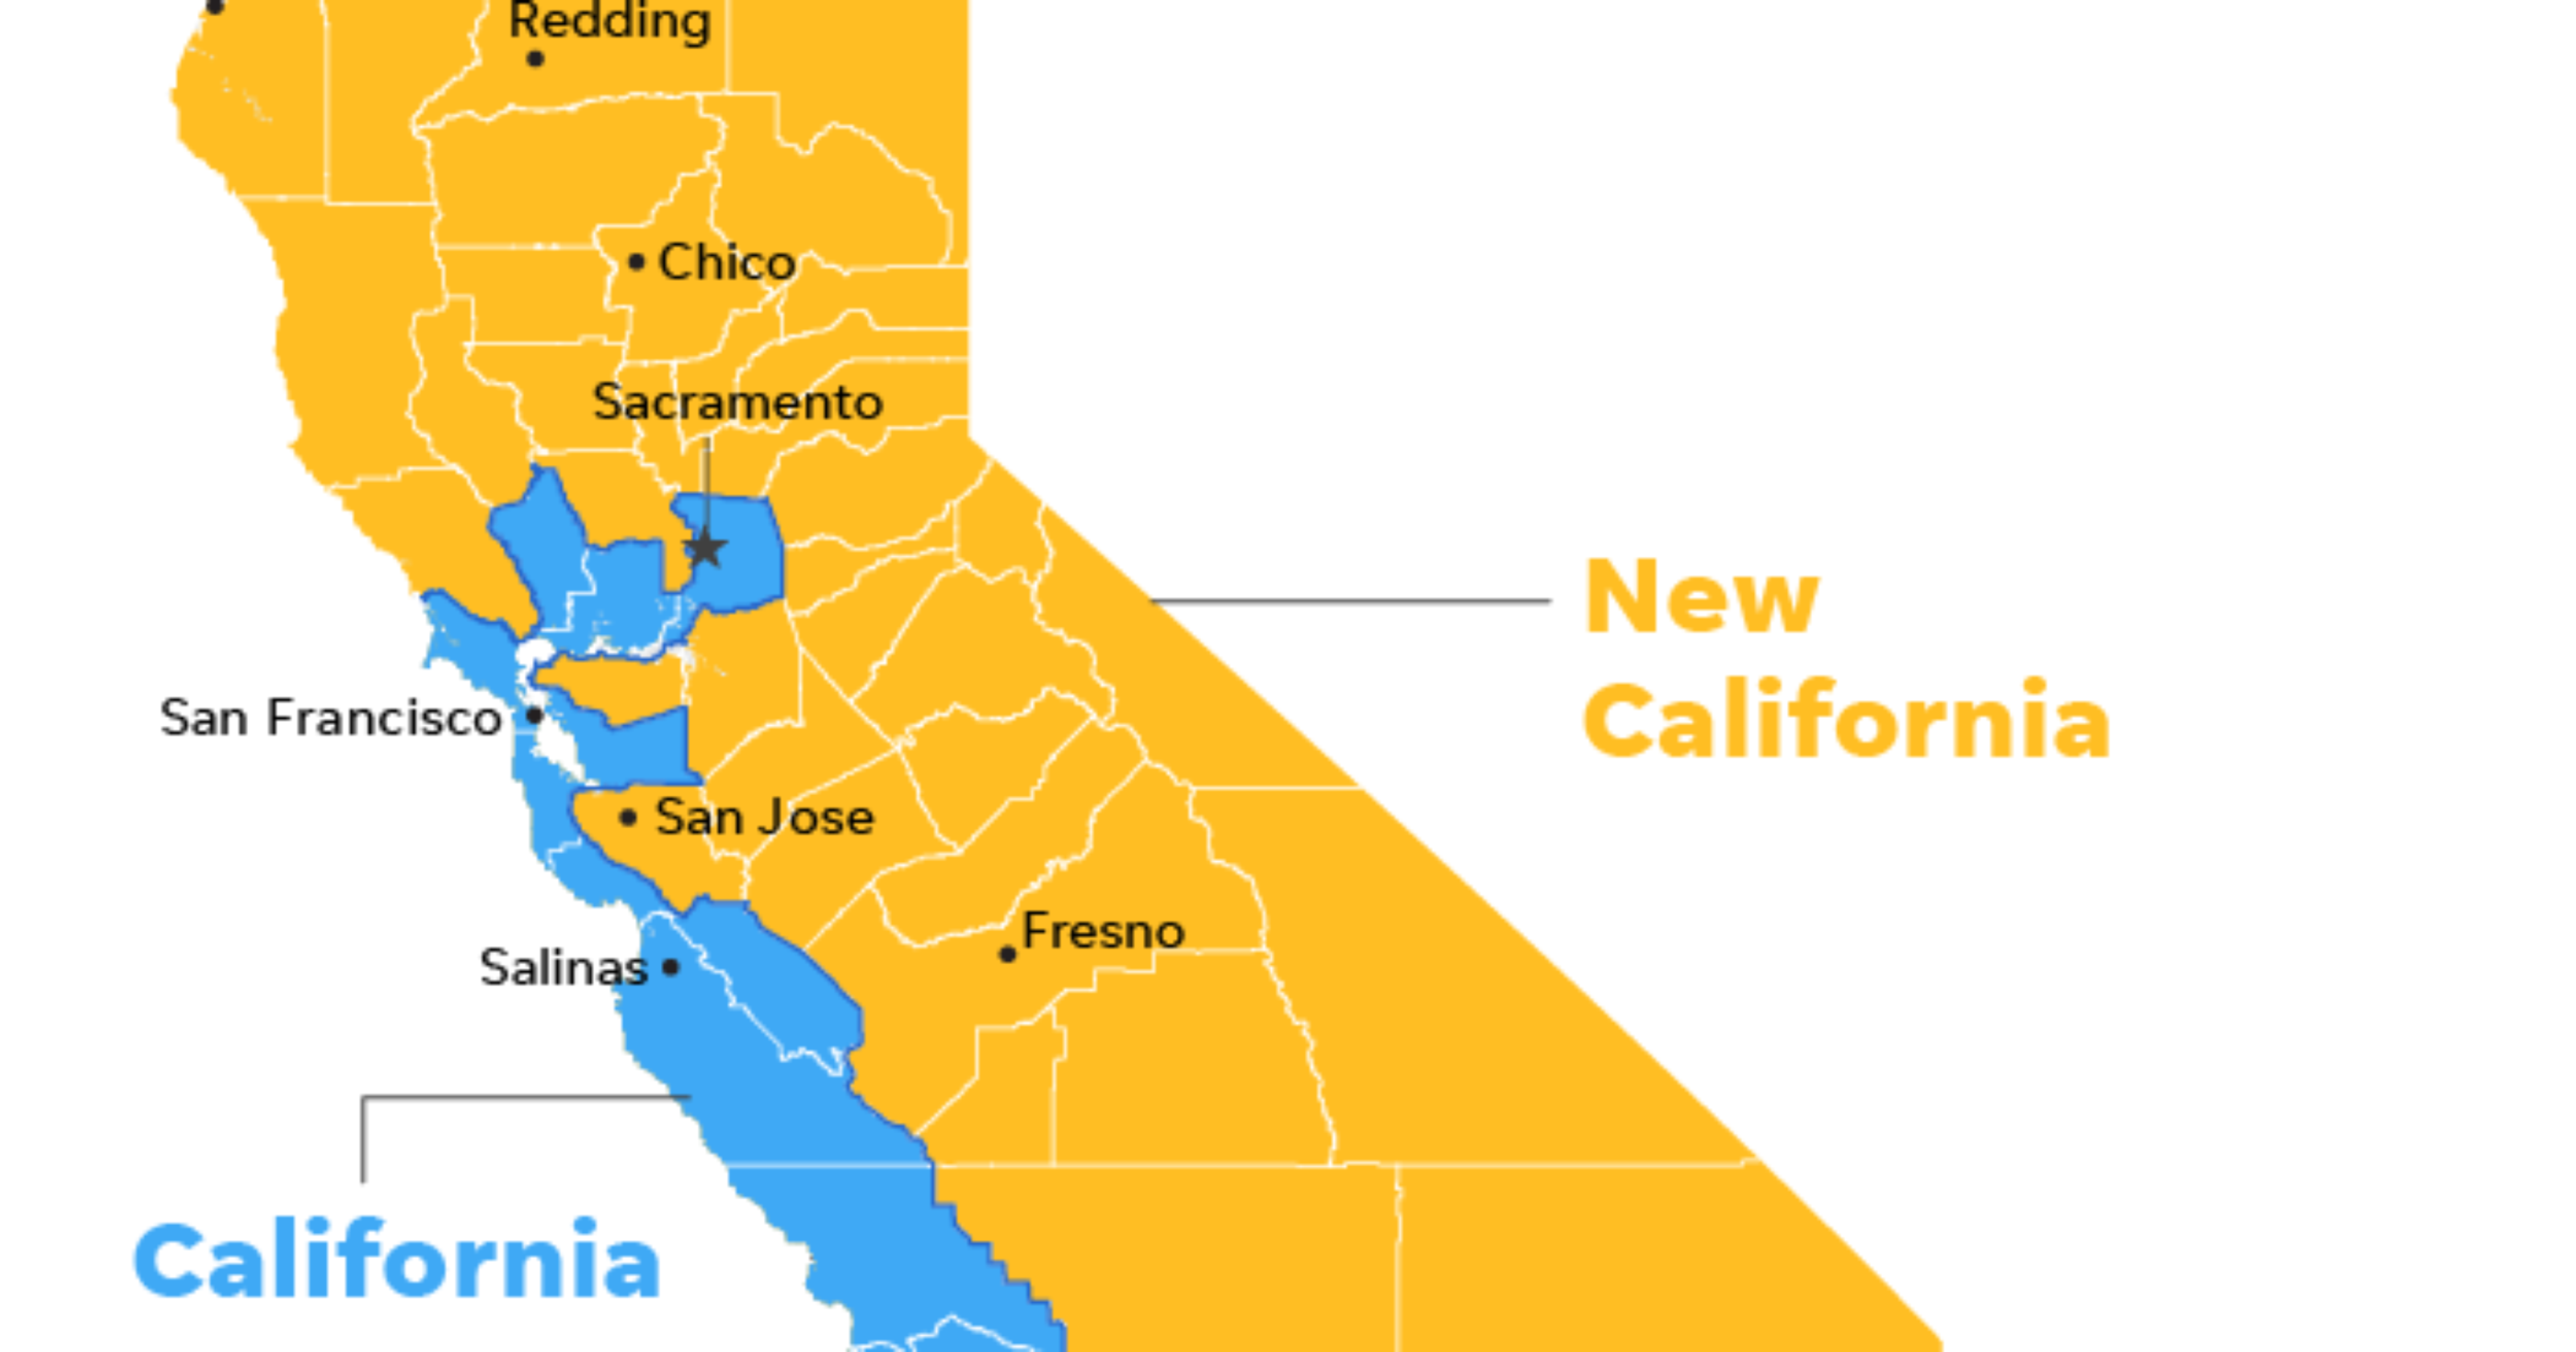 New California declares independence from California in statehood bid